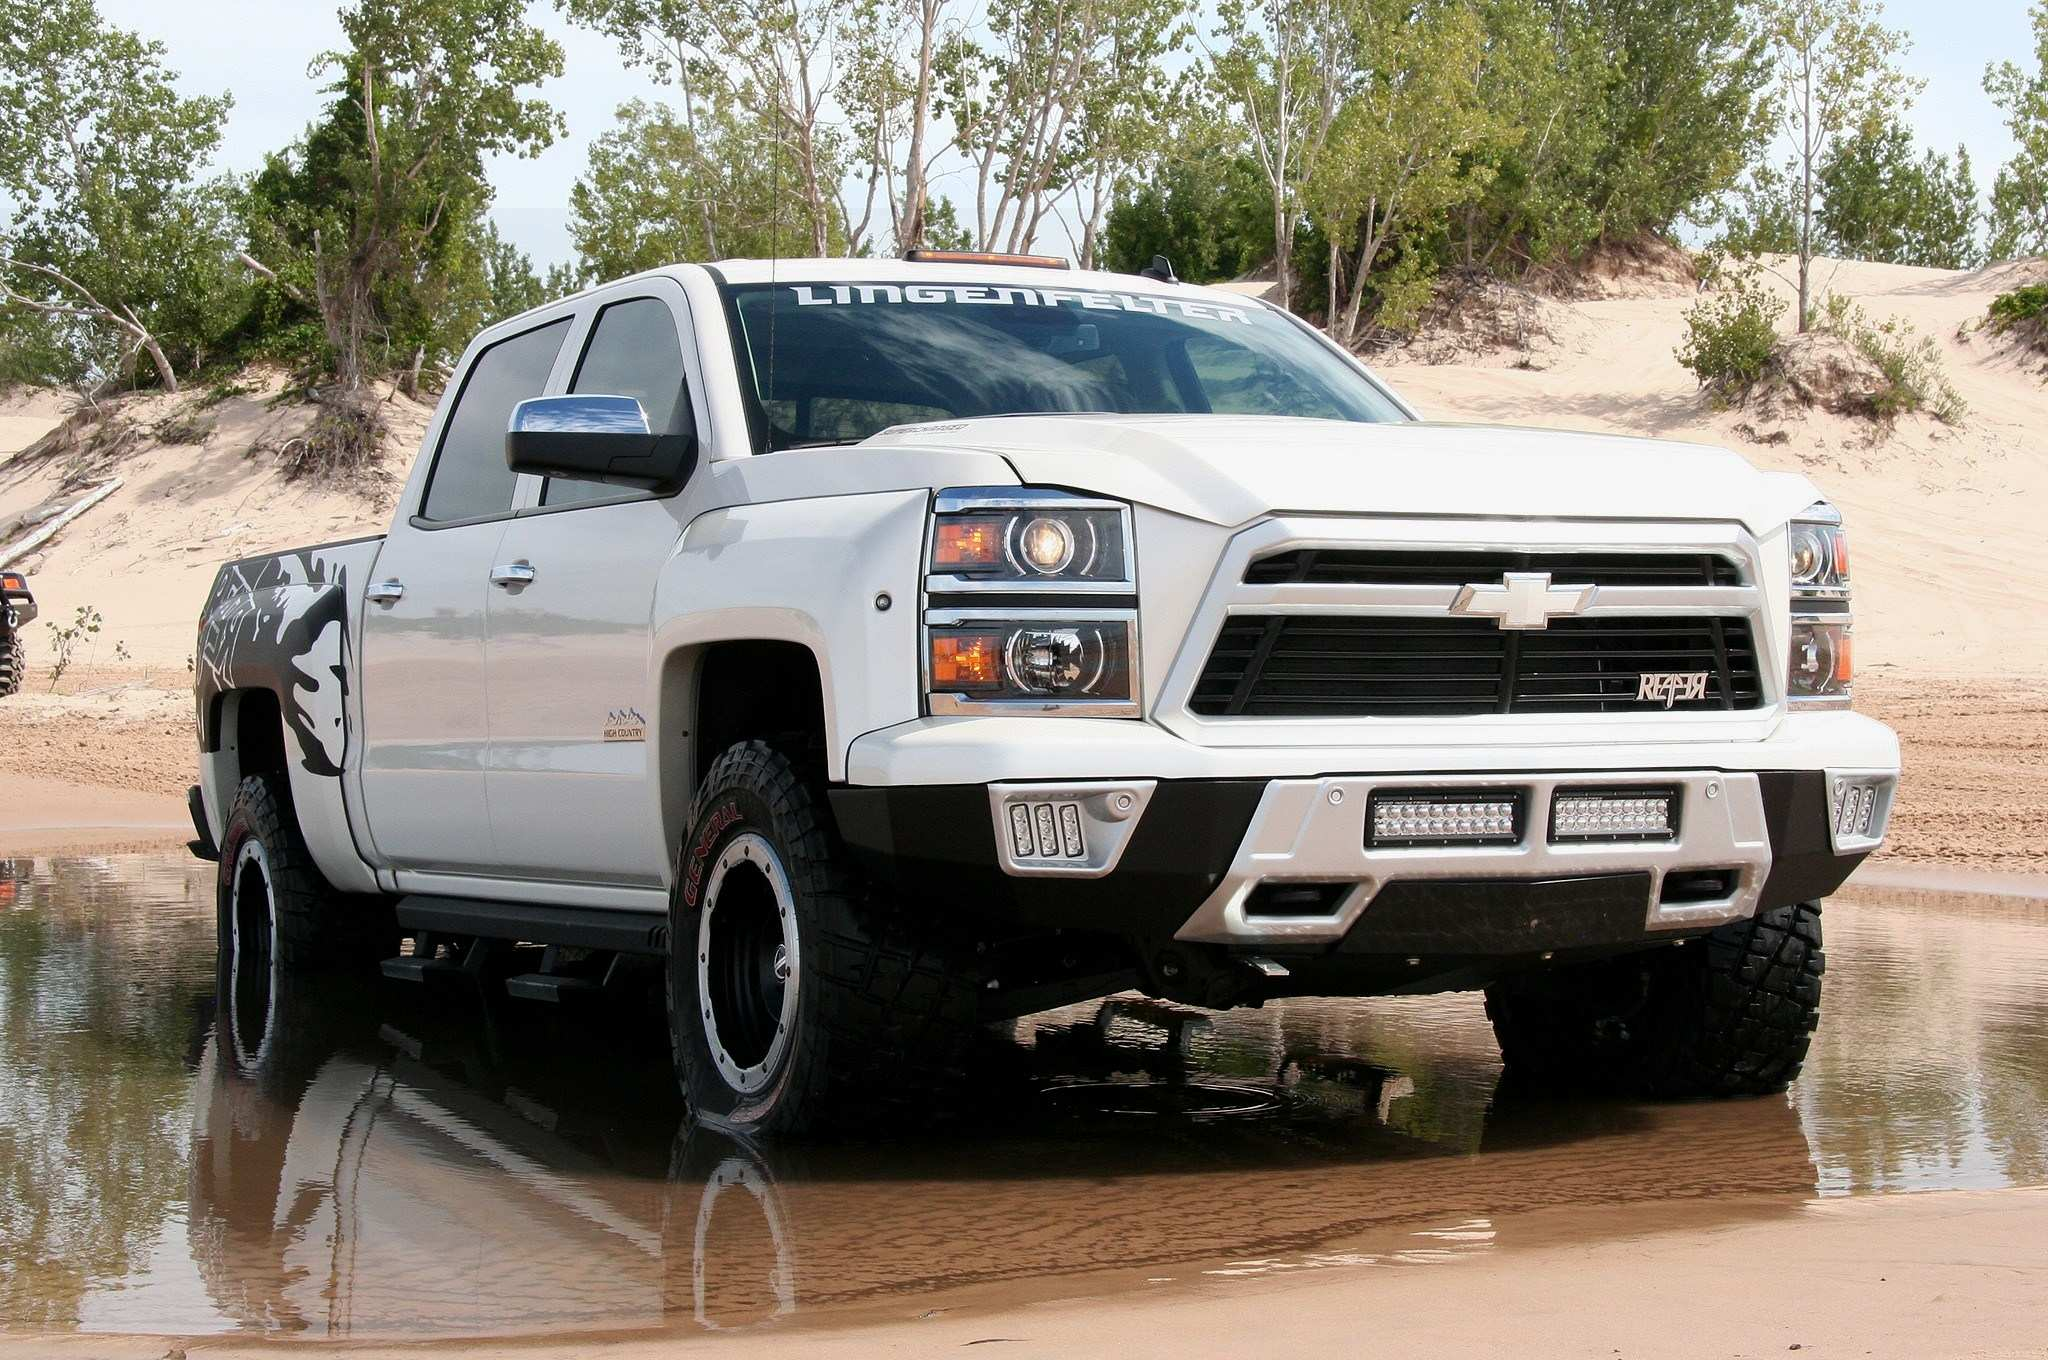 21 New Chevy Reaper Images Spesification by Chevy Reaper Images